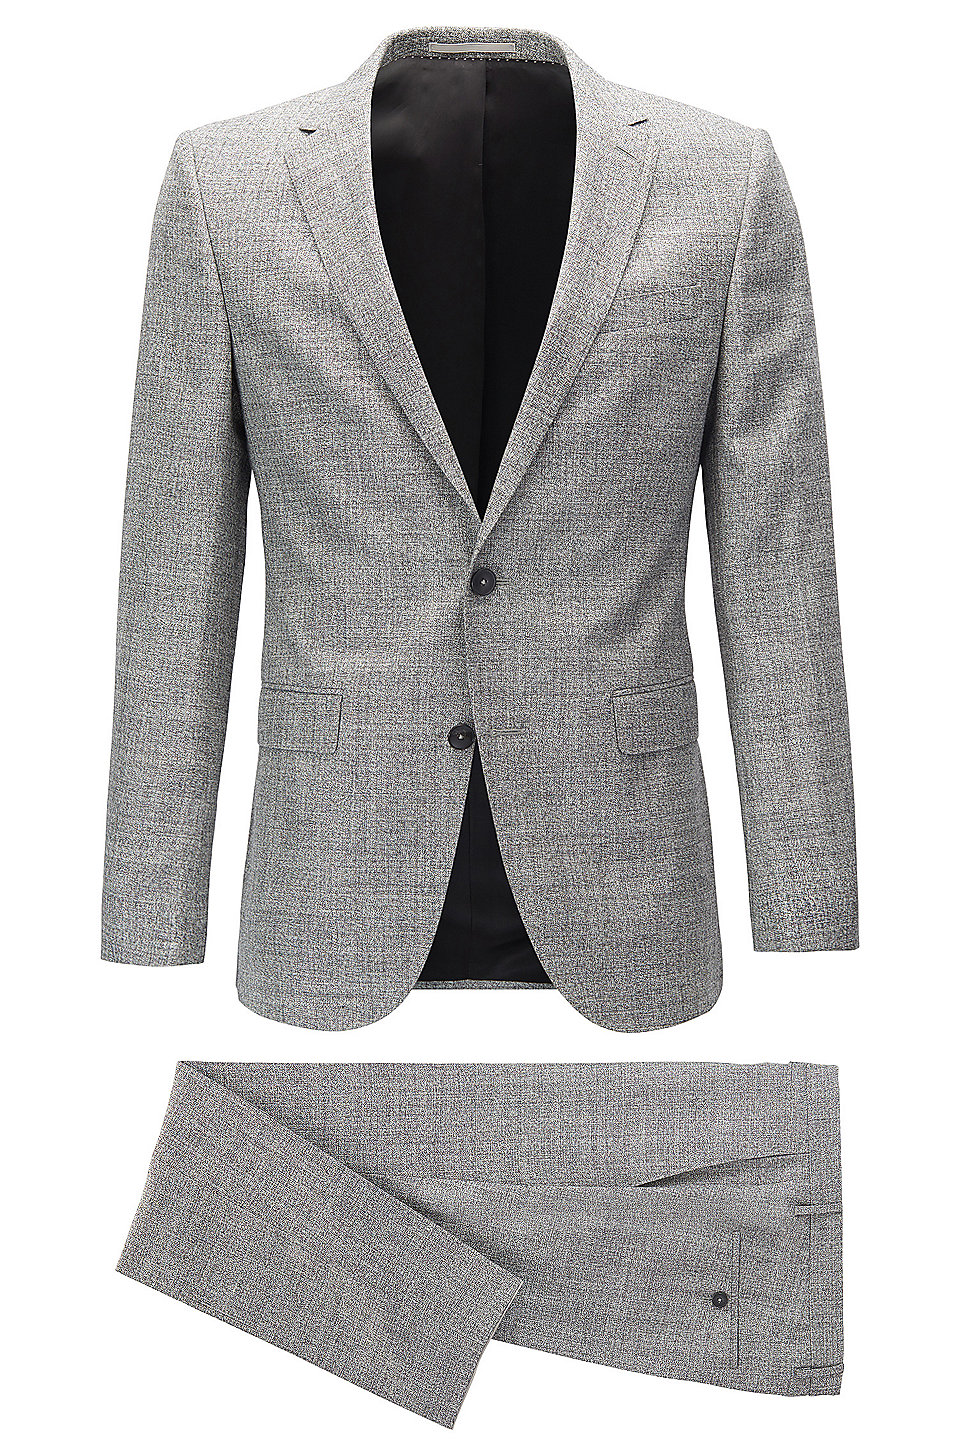 Grey Suit And Black Shoes